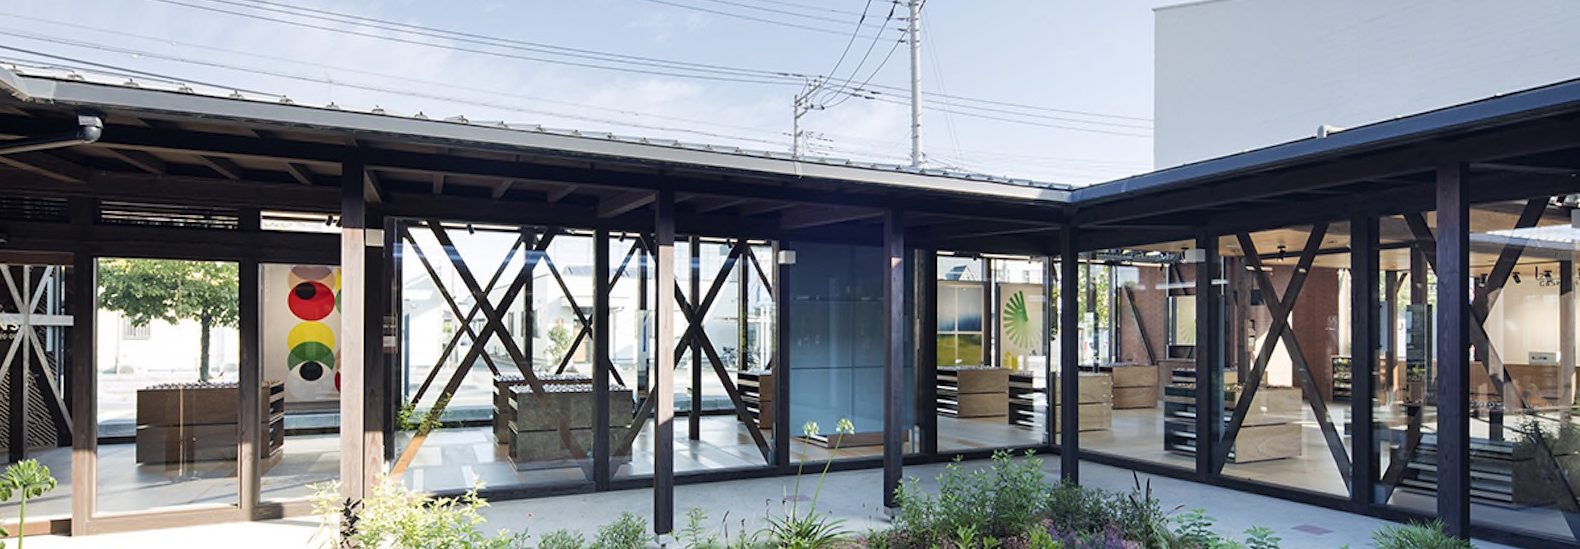 Schemata Architects Renovate A Japanese Eyewear Shop With Low E Glass